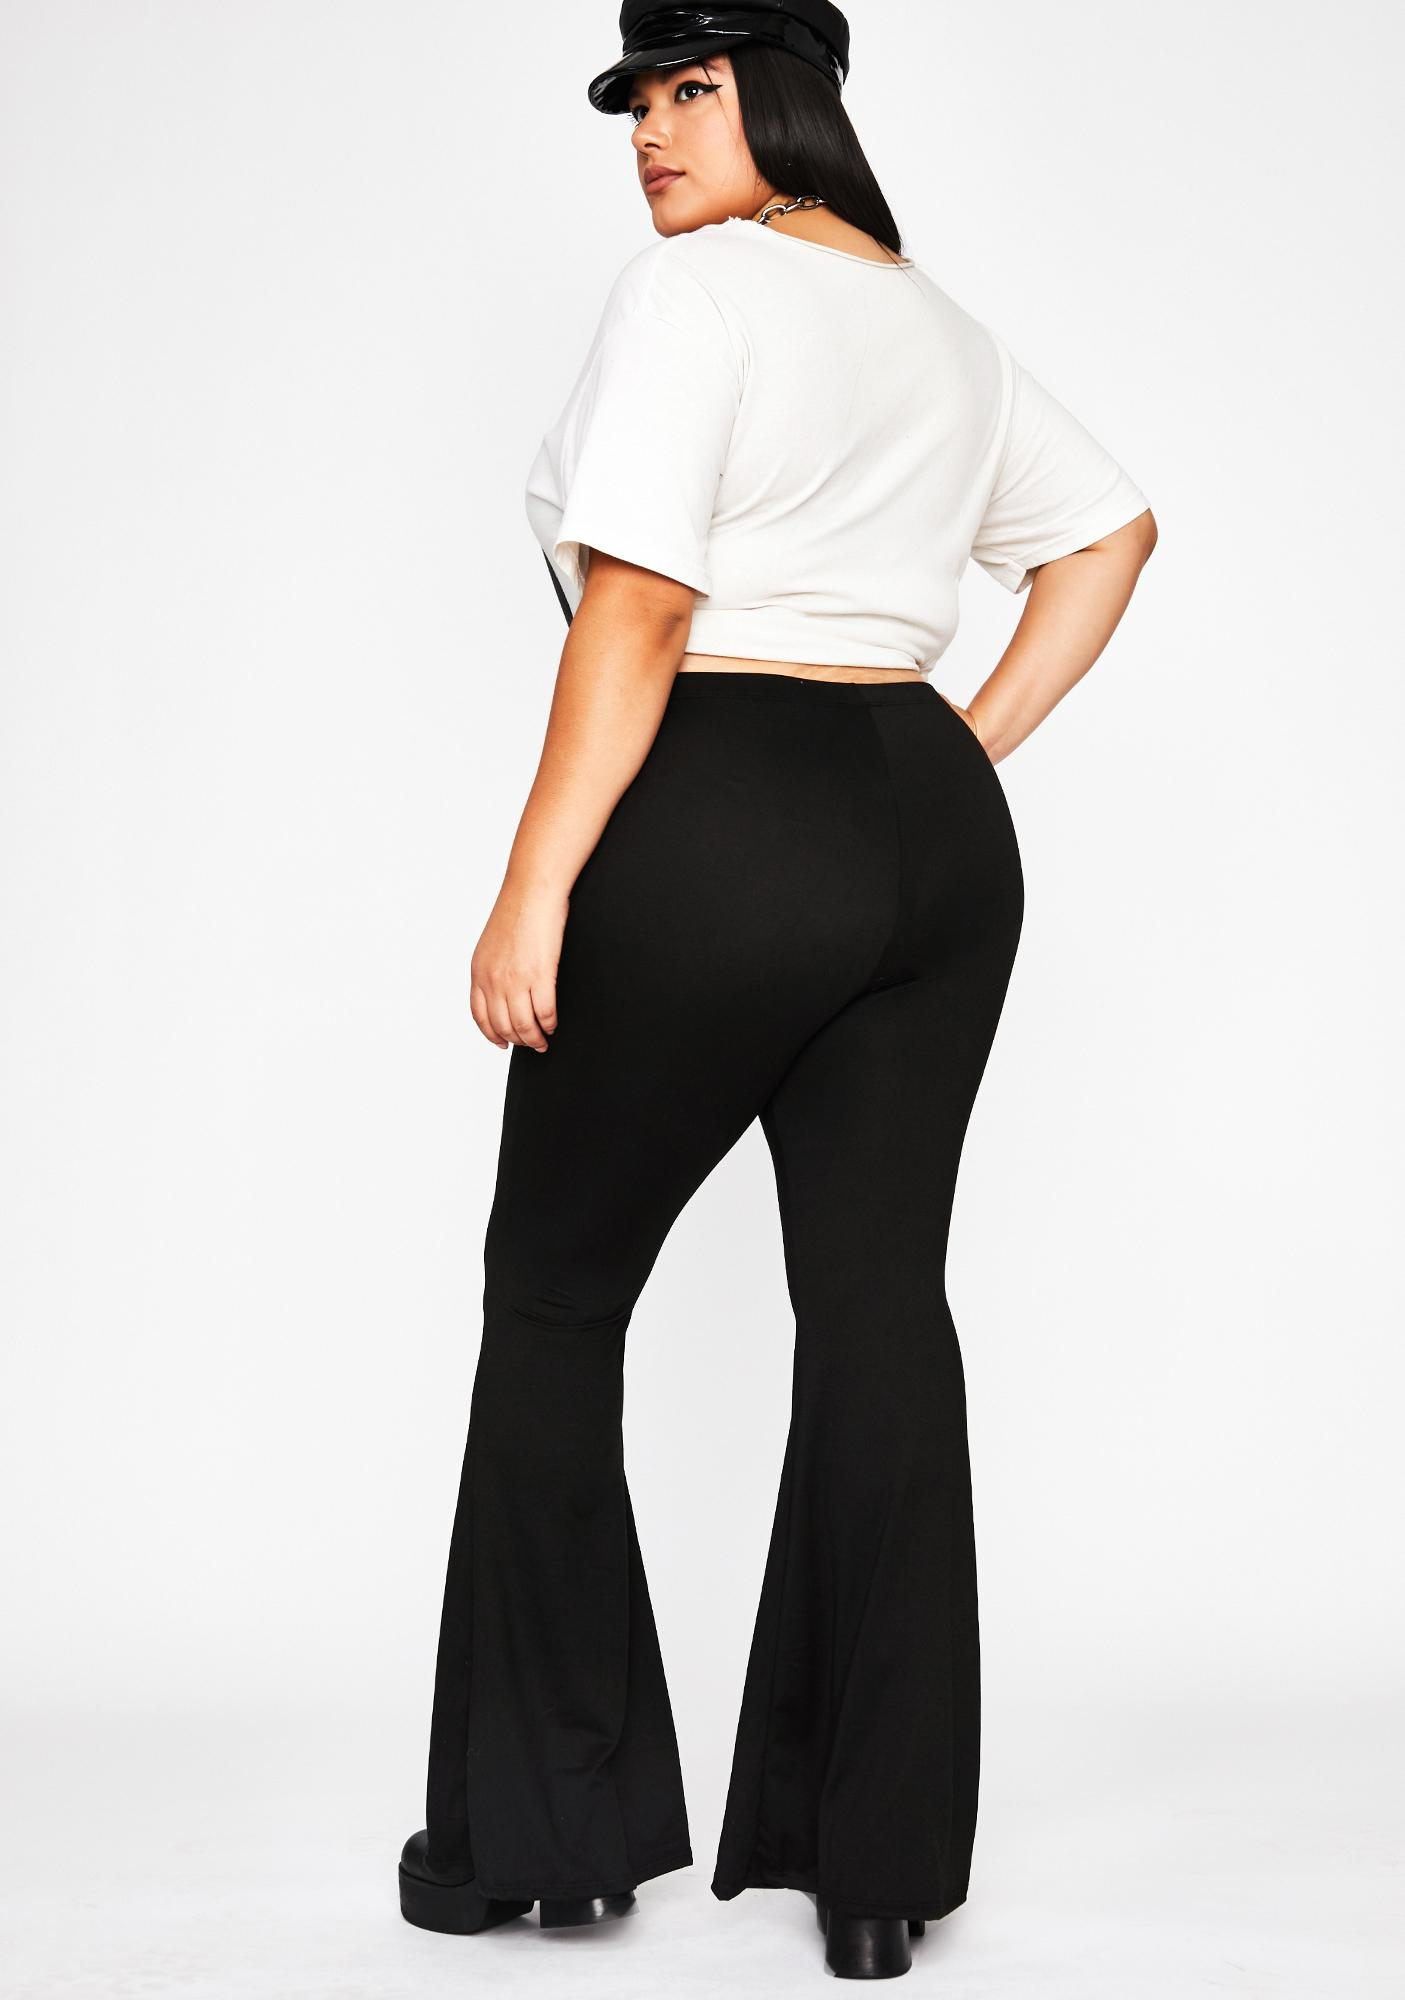 Totally Radical Love Flare Pants